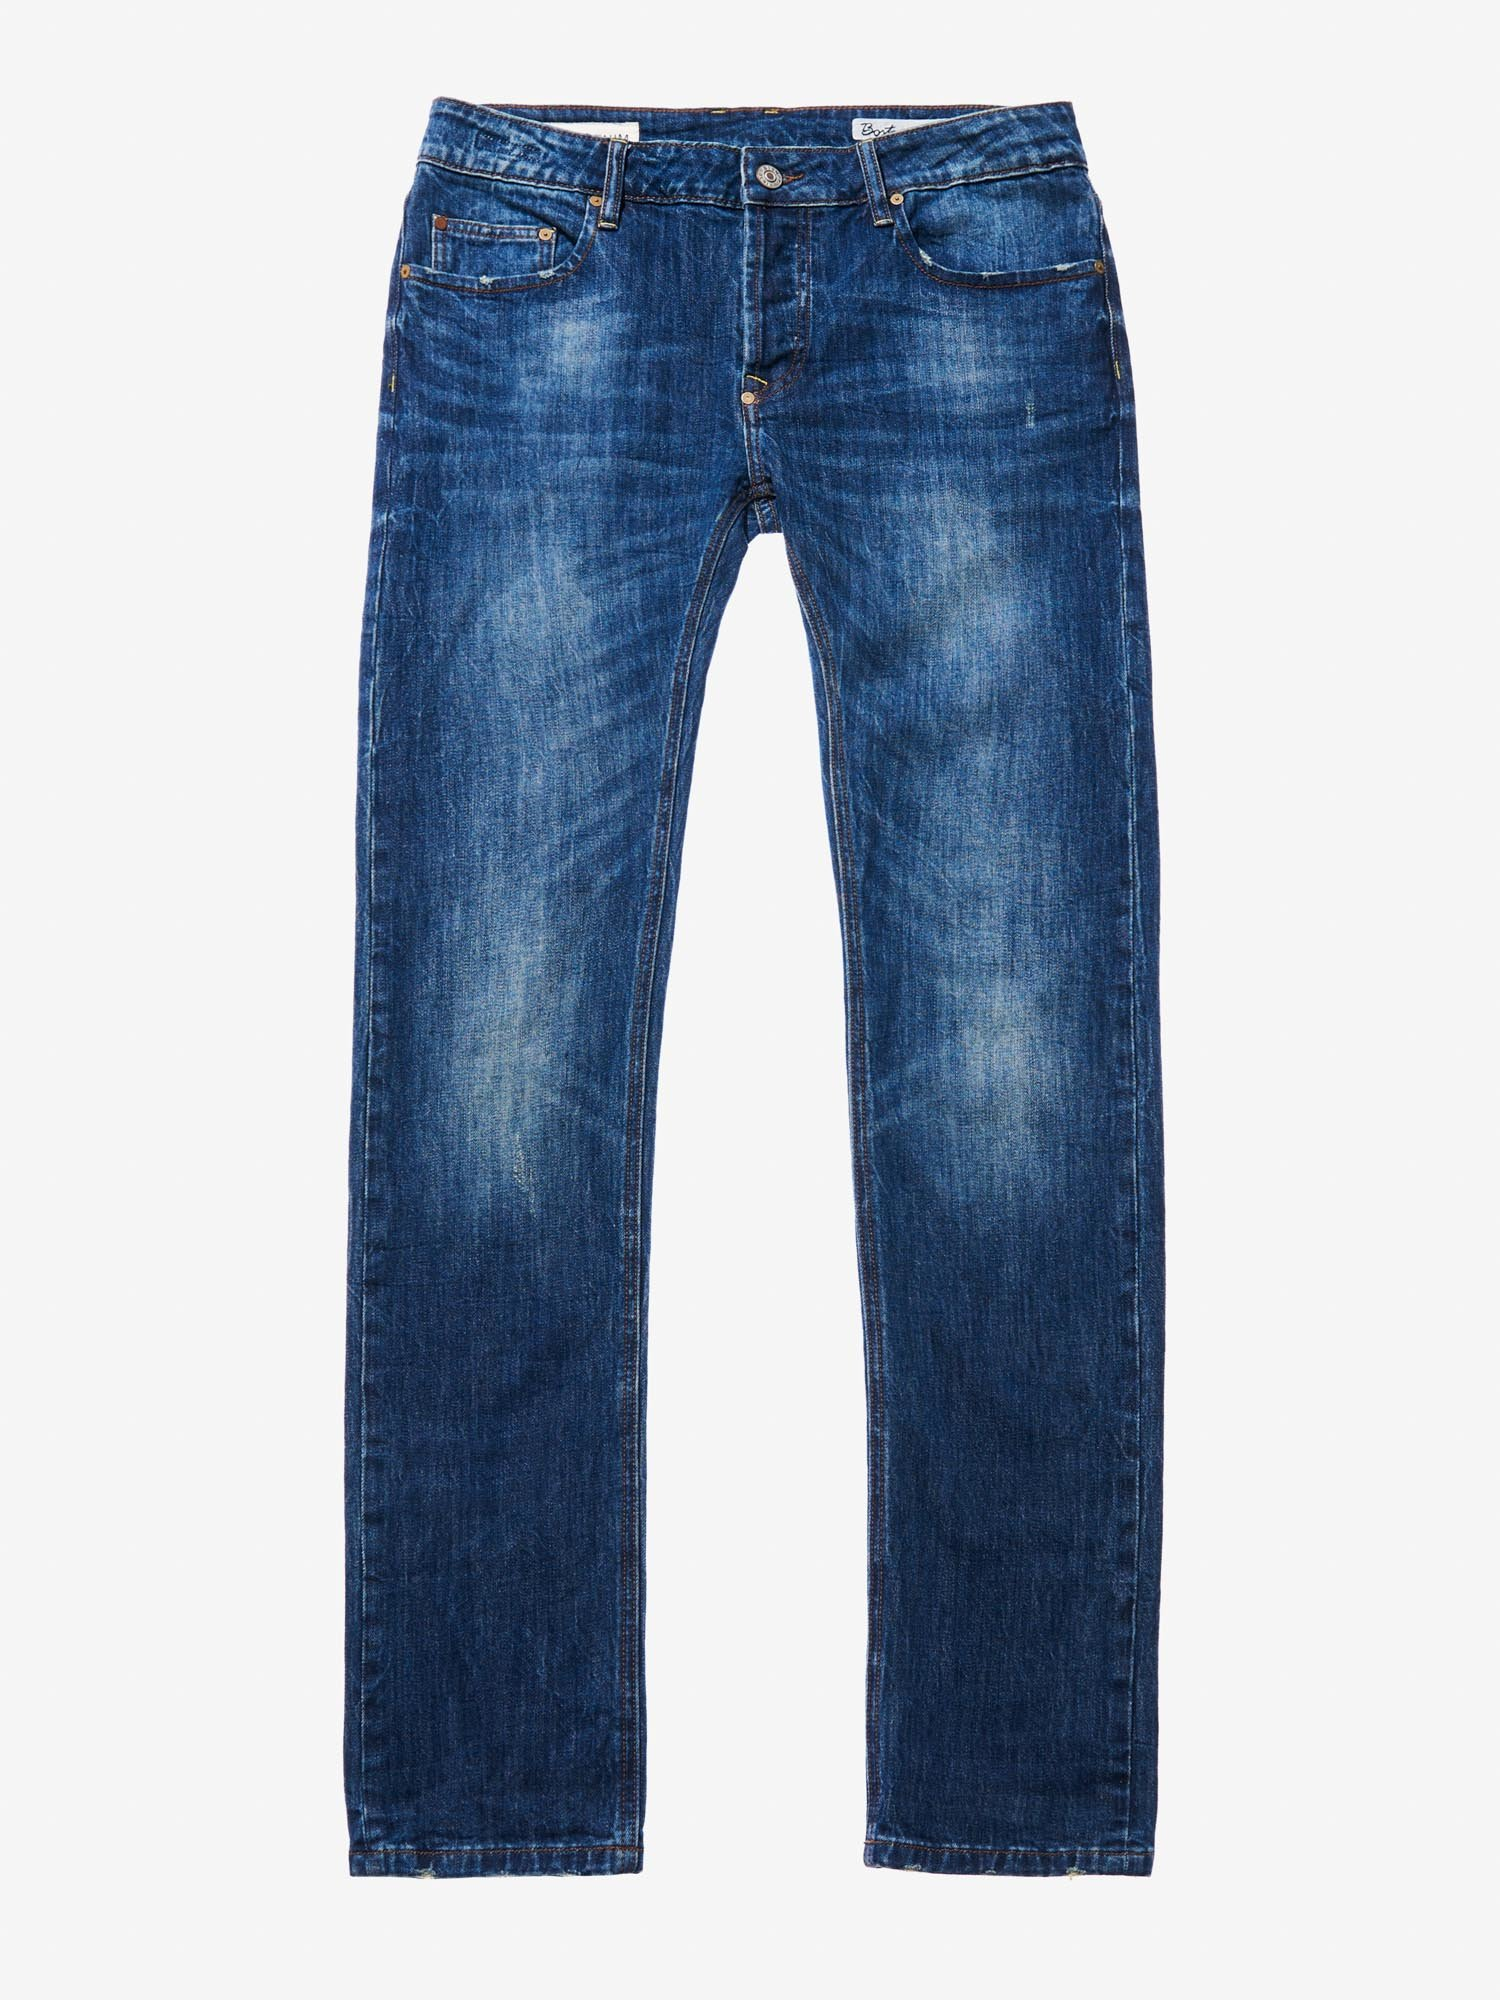 STONE WASHED 5-POCKET DENIM - Blauer